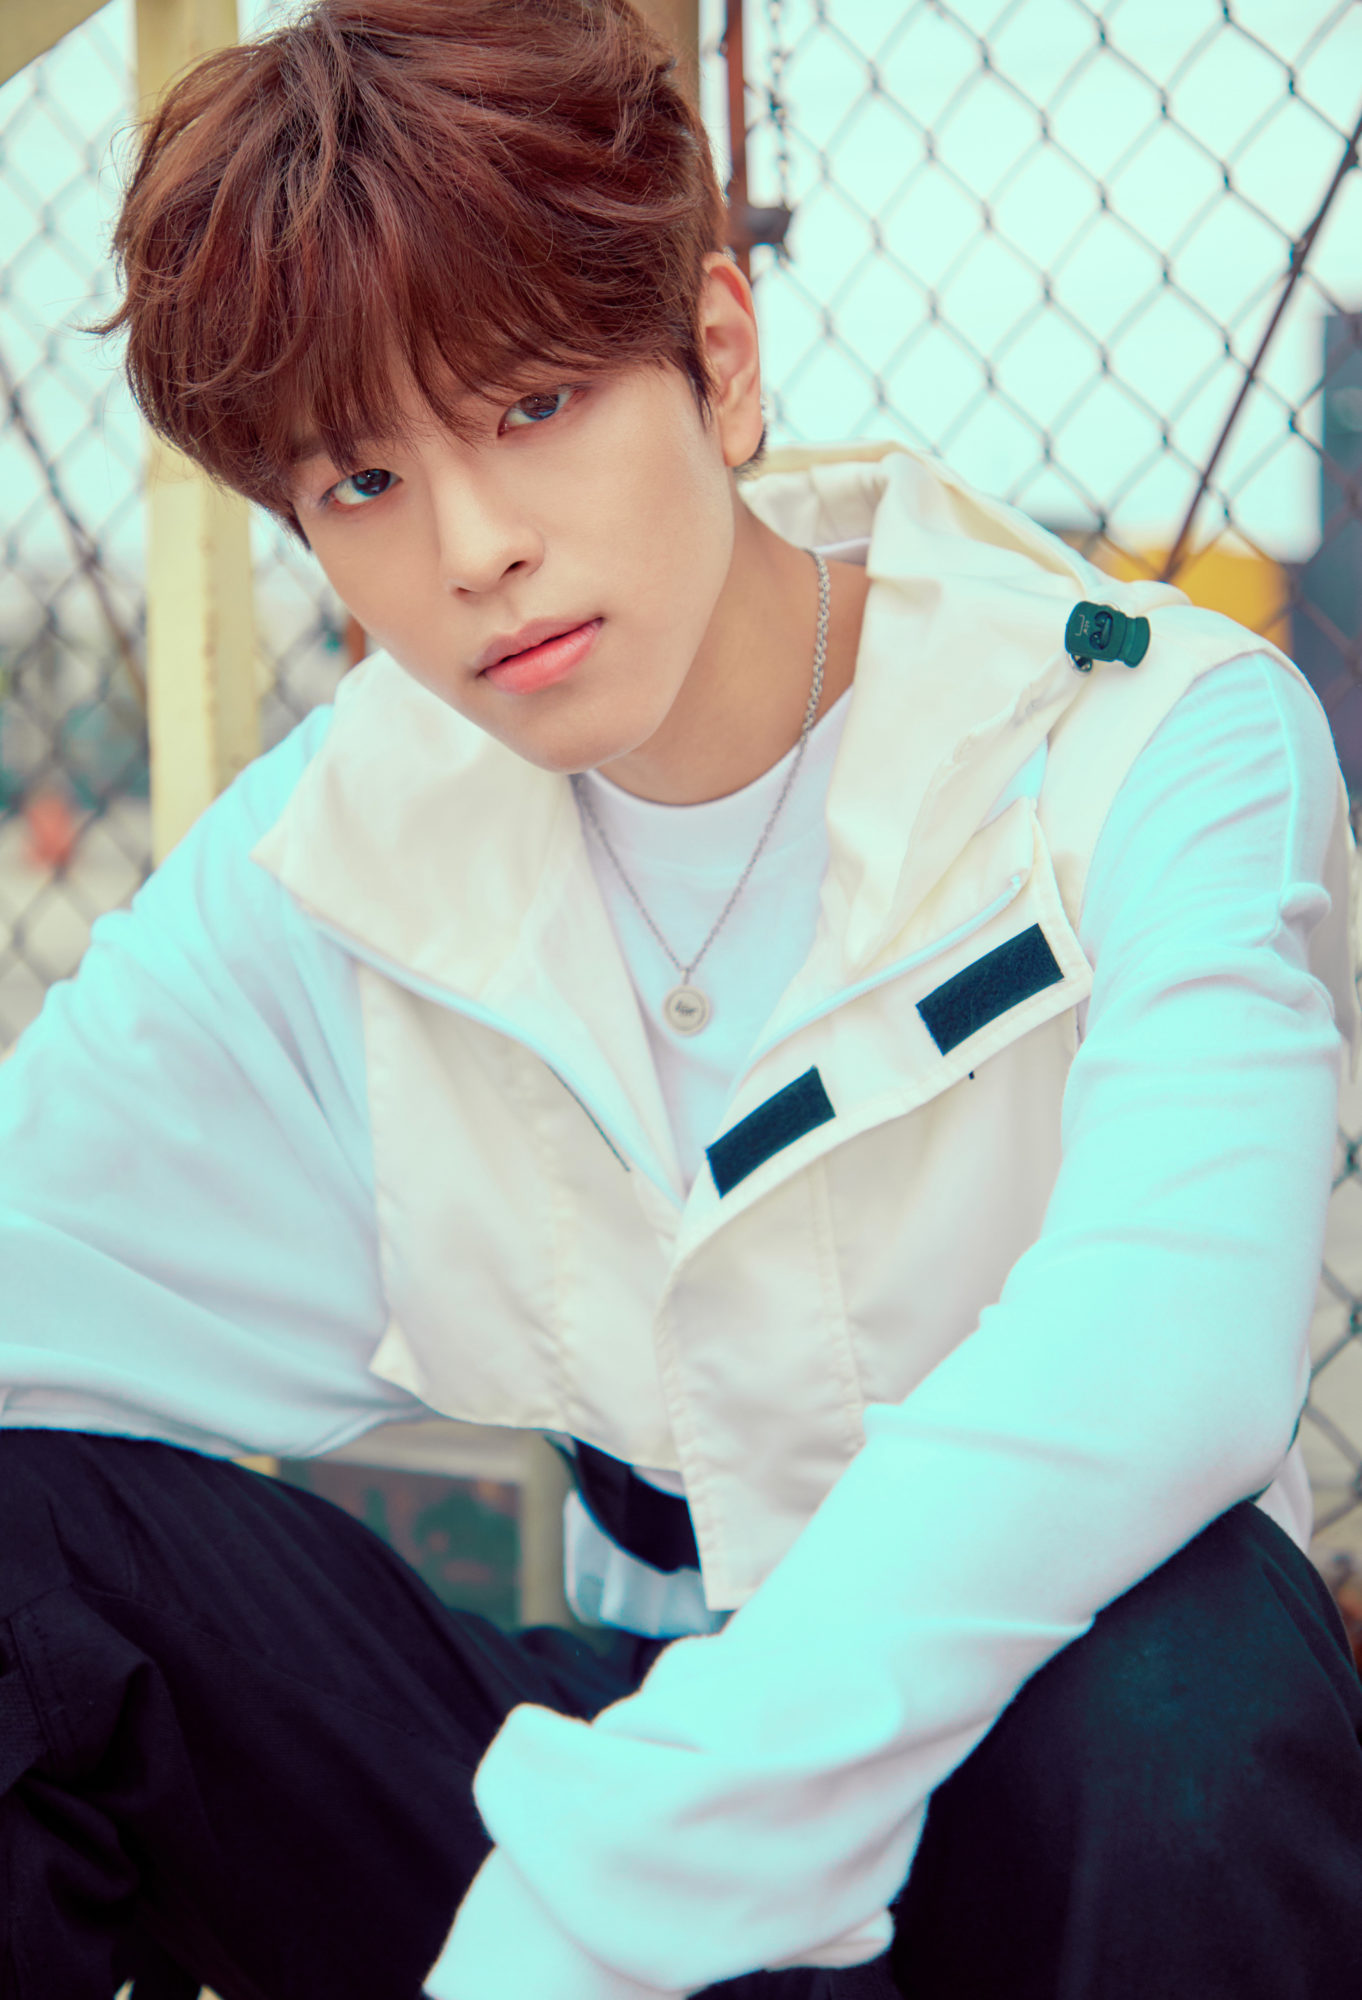 Stray Kids Seungmin Double Knot Concept